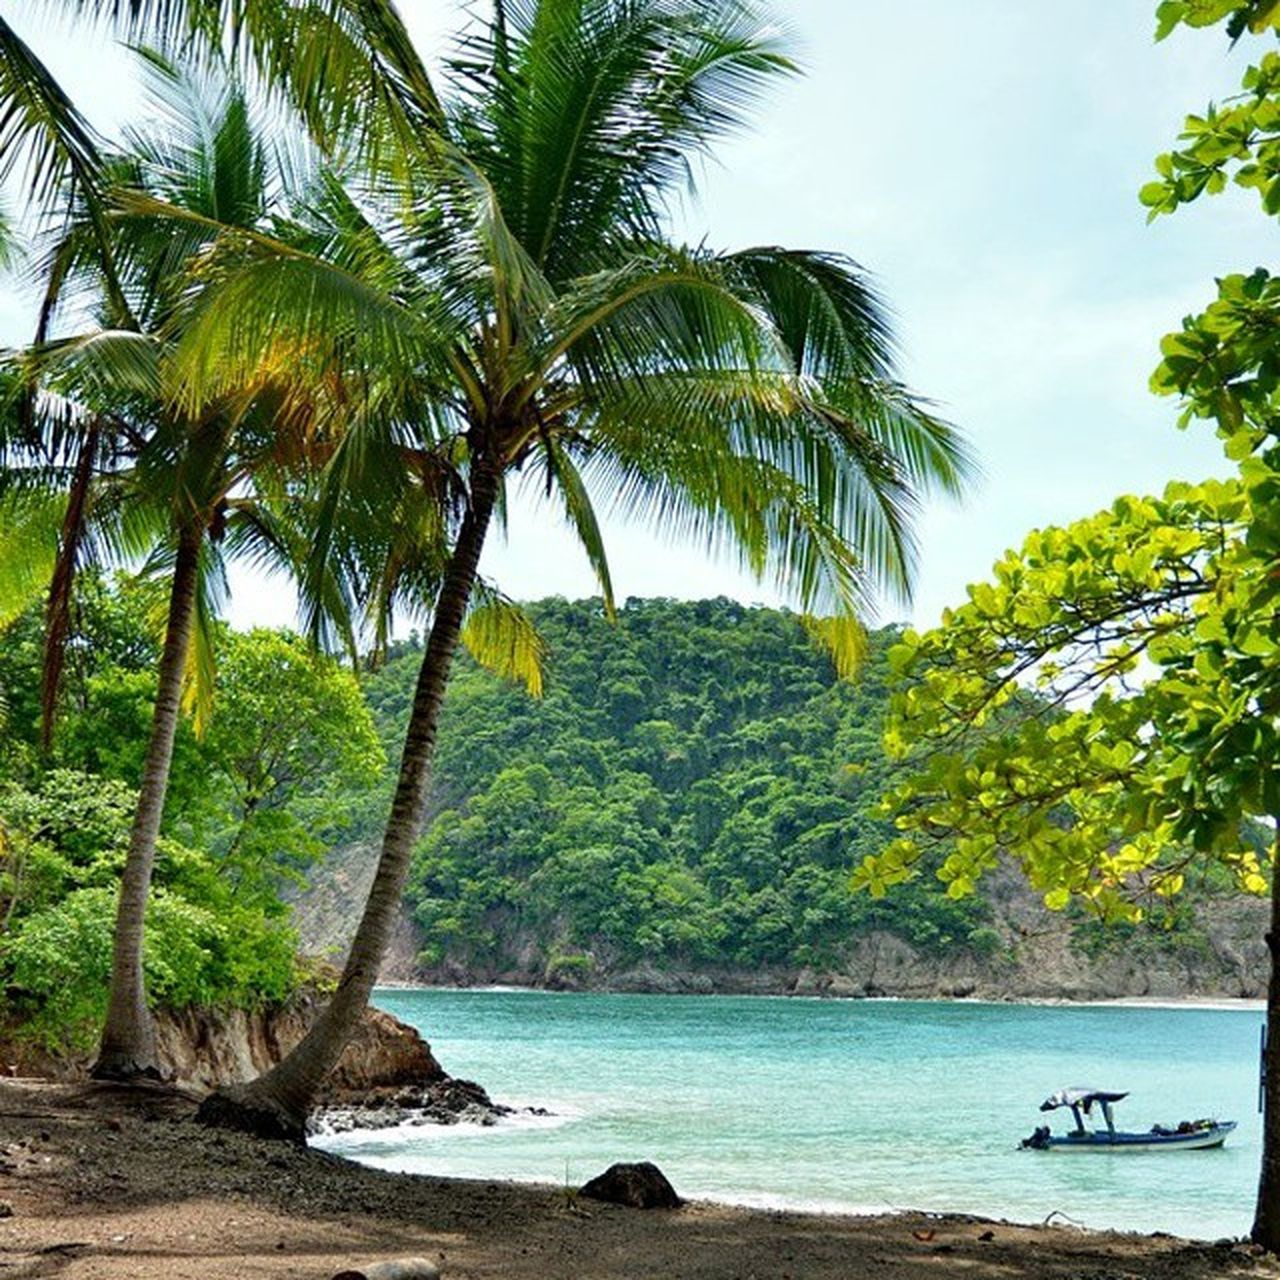 tree, palm tree, nature, water, scenics, beauty in nature, beach, sea, tropical climate, tranquil scene, nautical vessel, tranquility, travel destinations, day, outdoors, vacations, green color, sand, forest, no people, sky, tree trunk, mountain, longtail boat